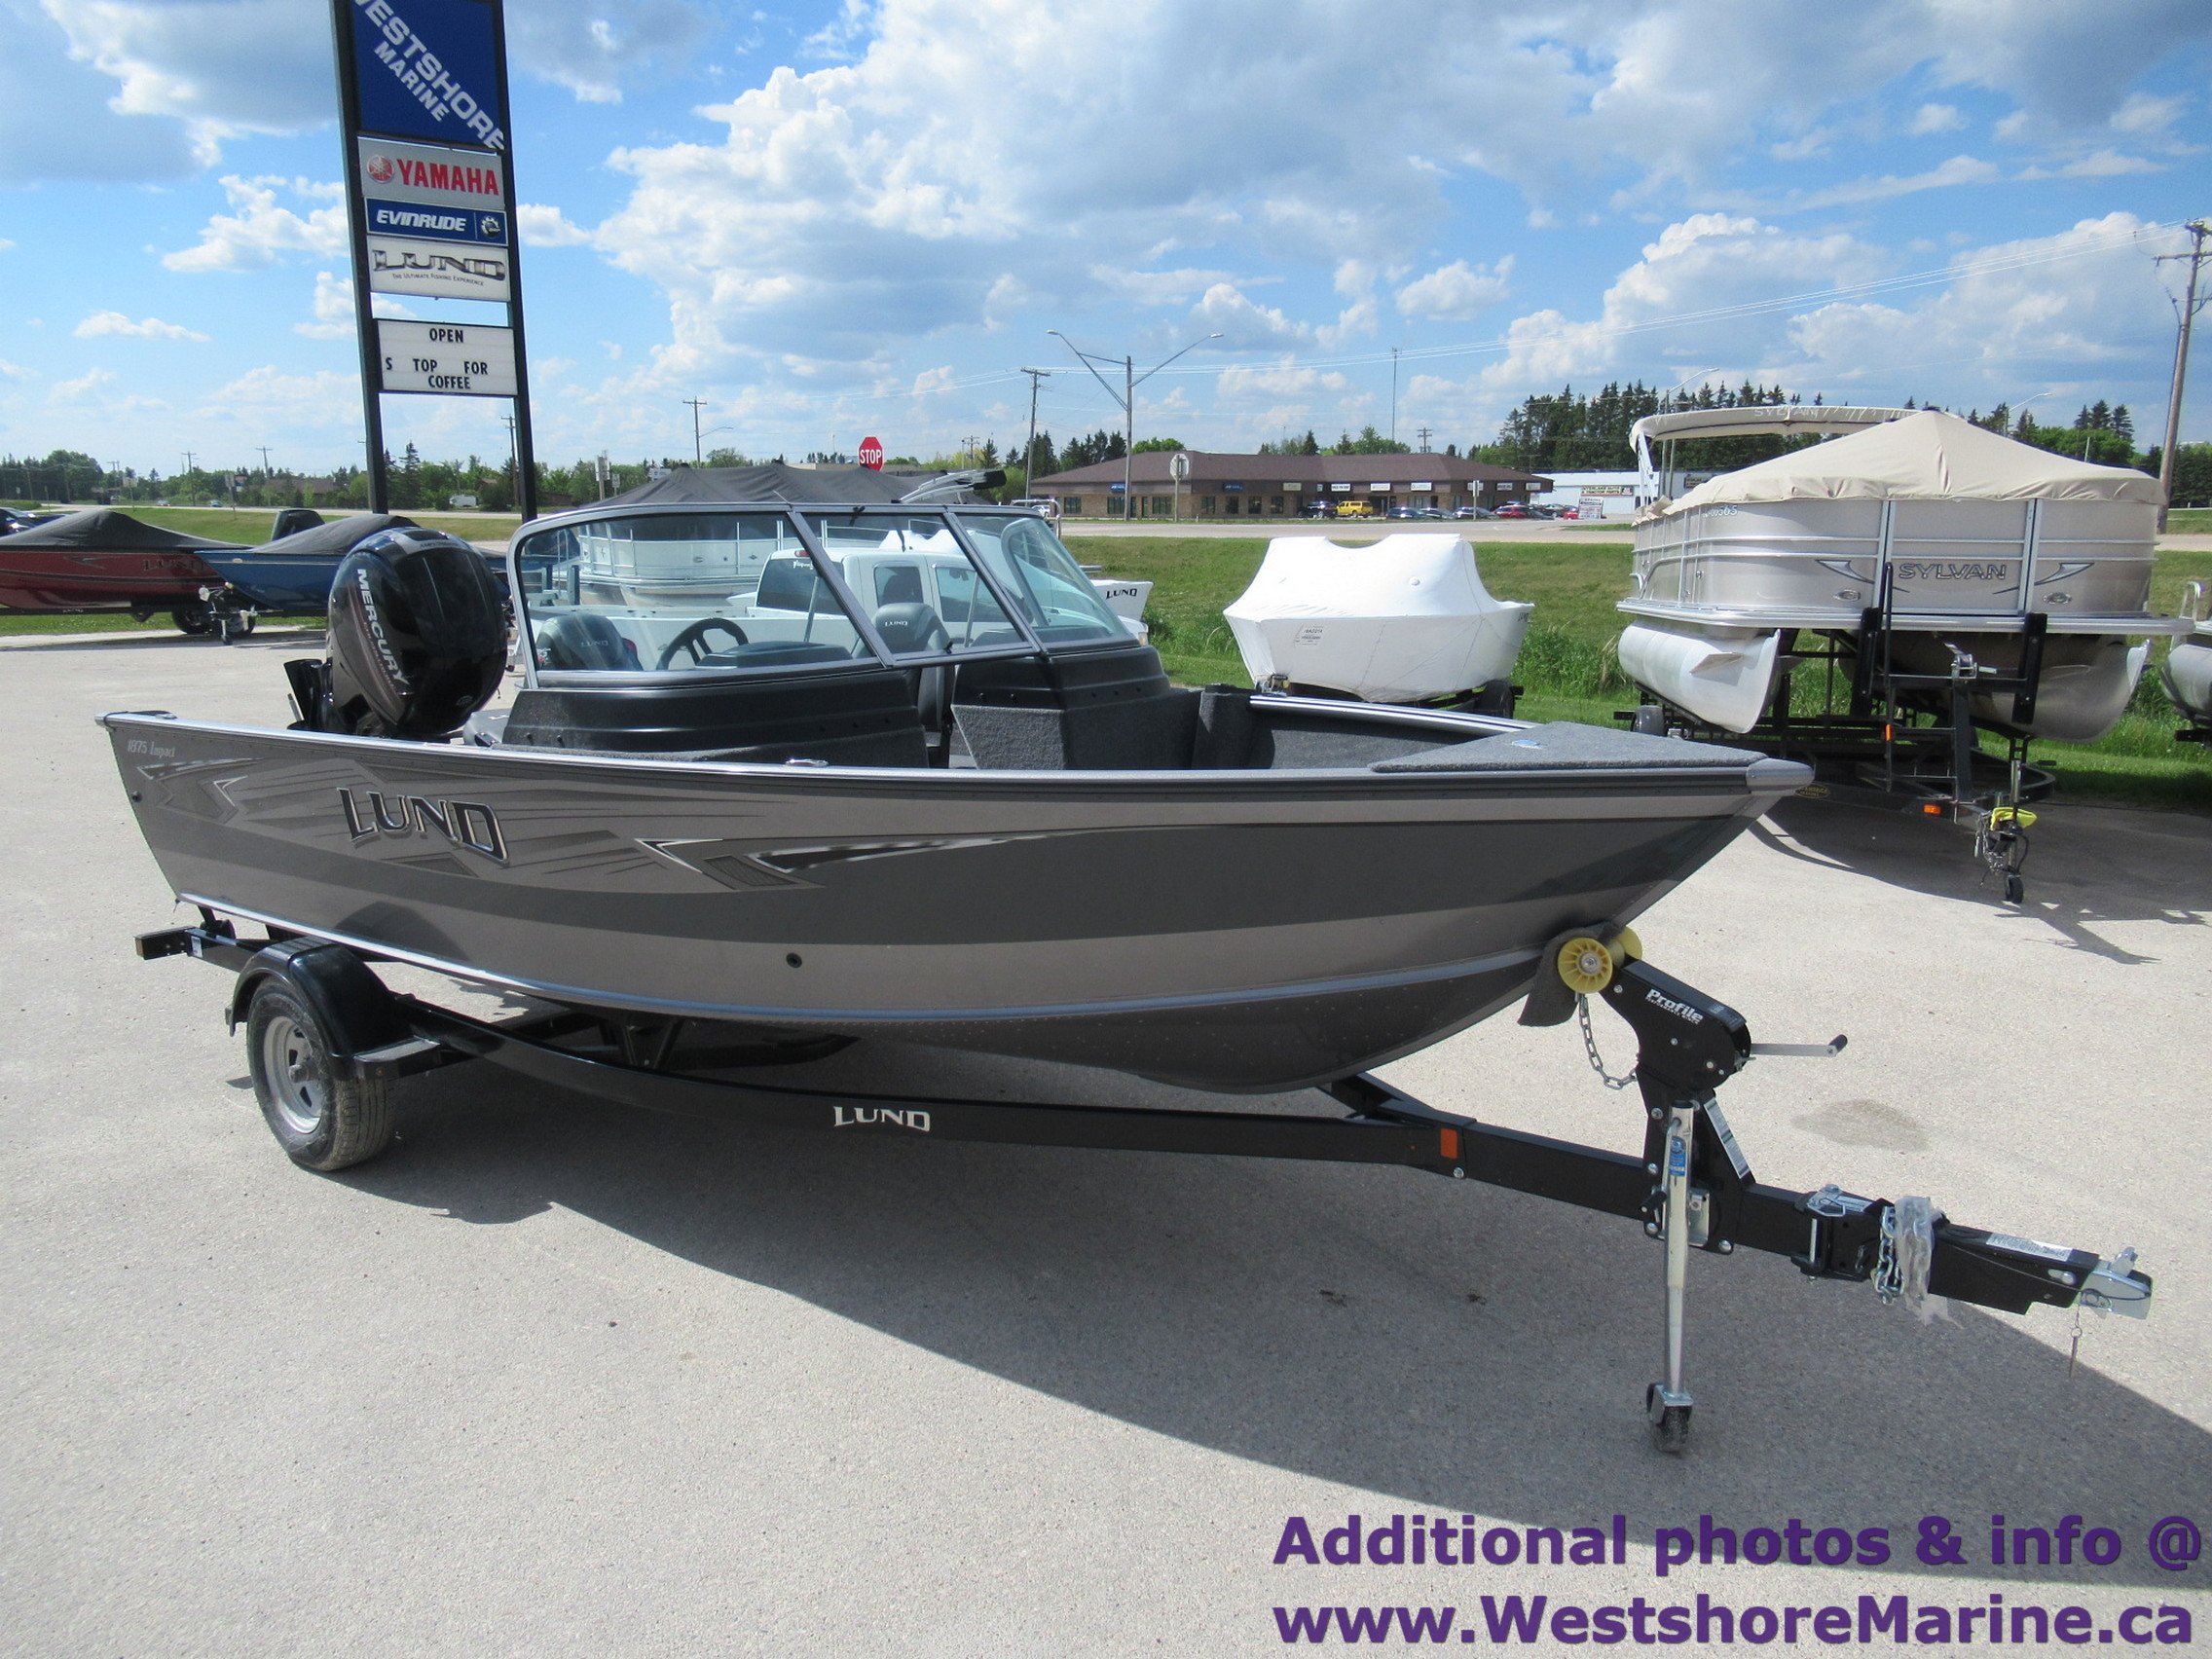 New 2018 LUND 1875 IMPACT SPORT (BOAT, MOTOR, TRAILER PACKAGE)